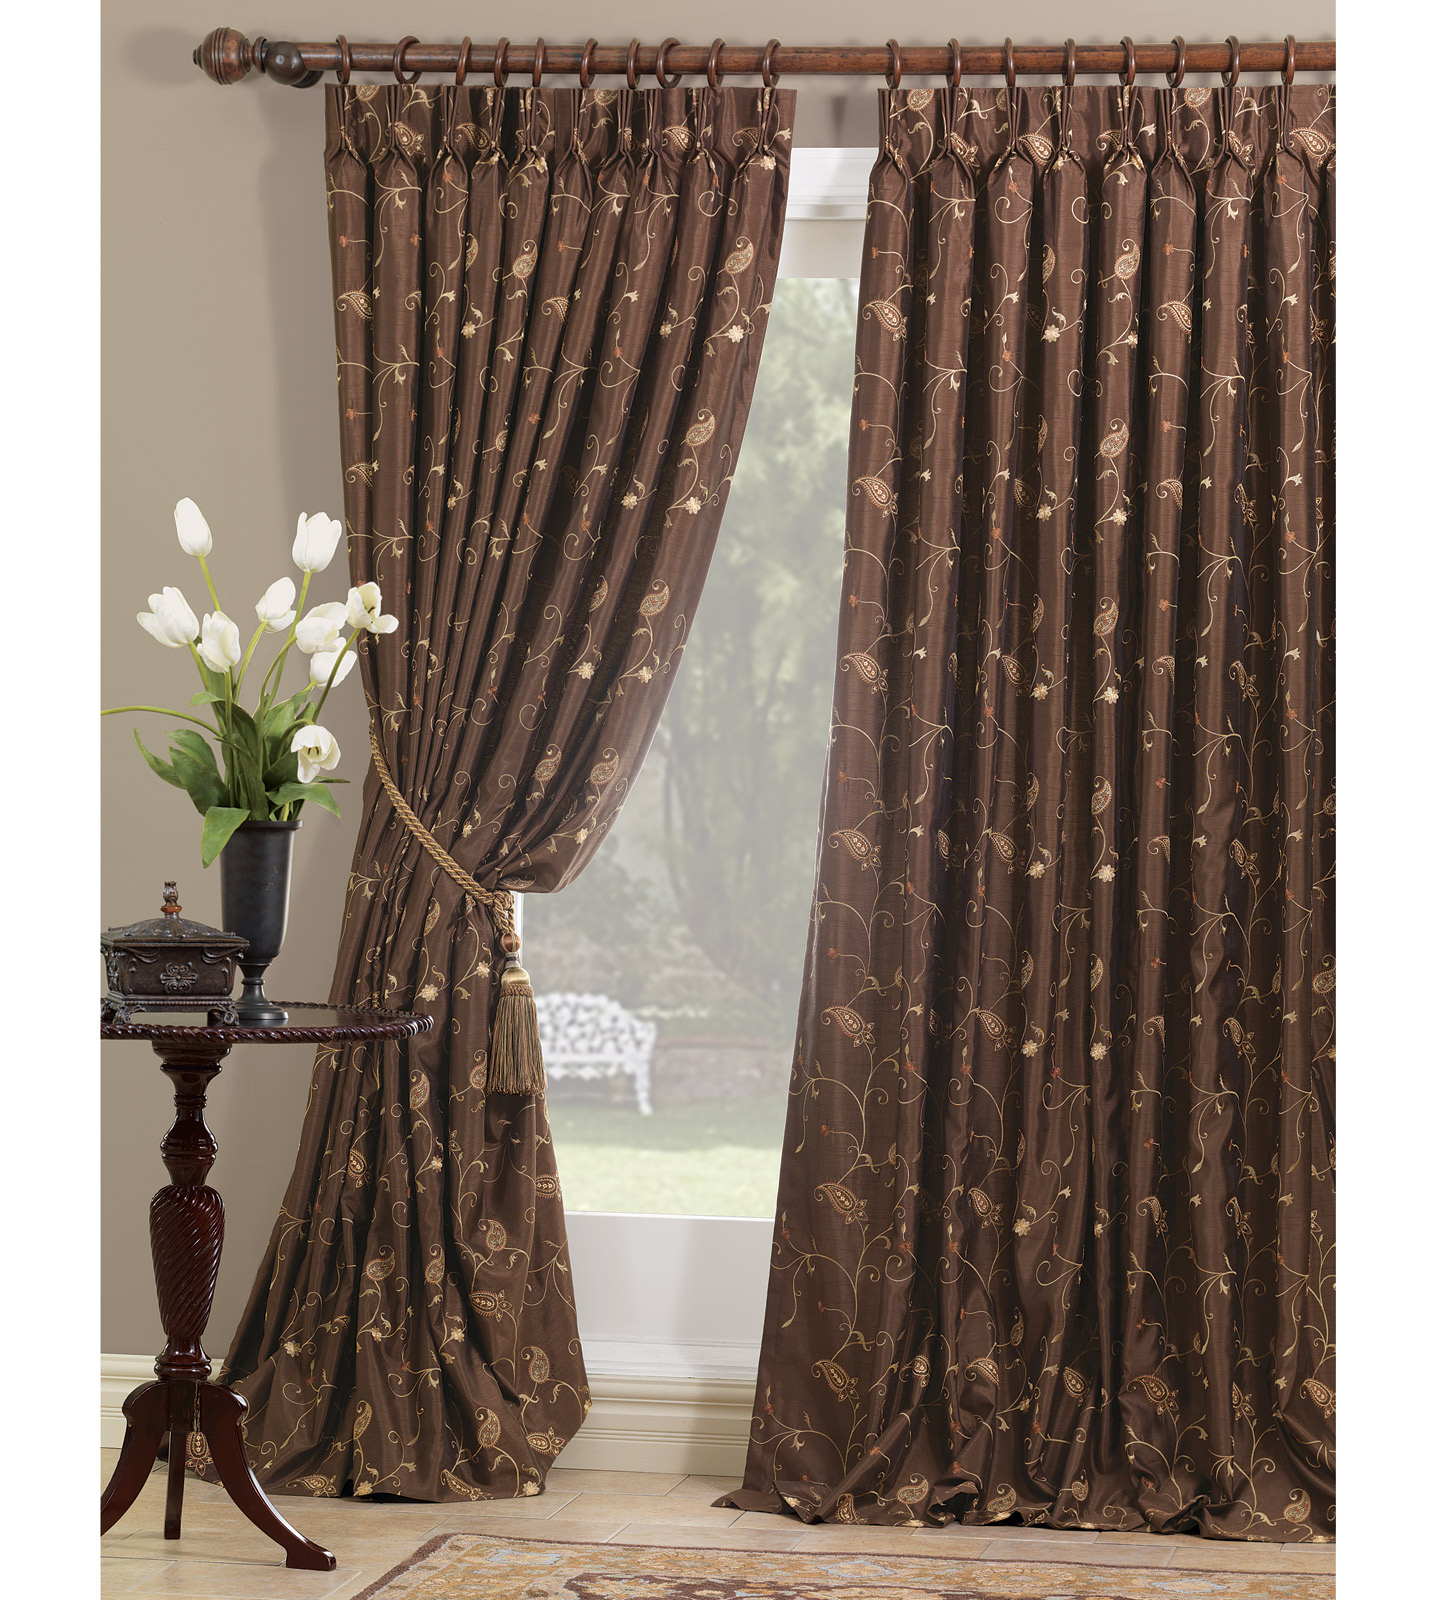 studio background curtains luxury bedding by eastern accents cecilia